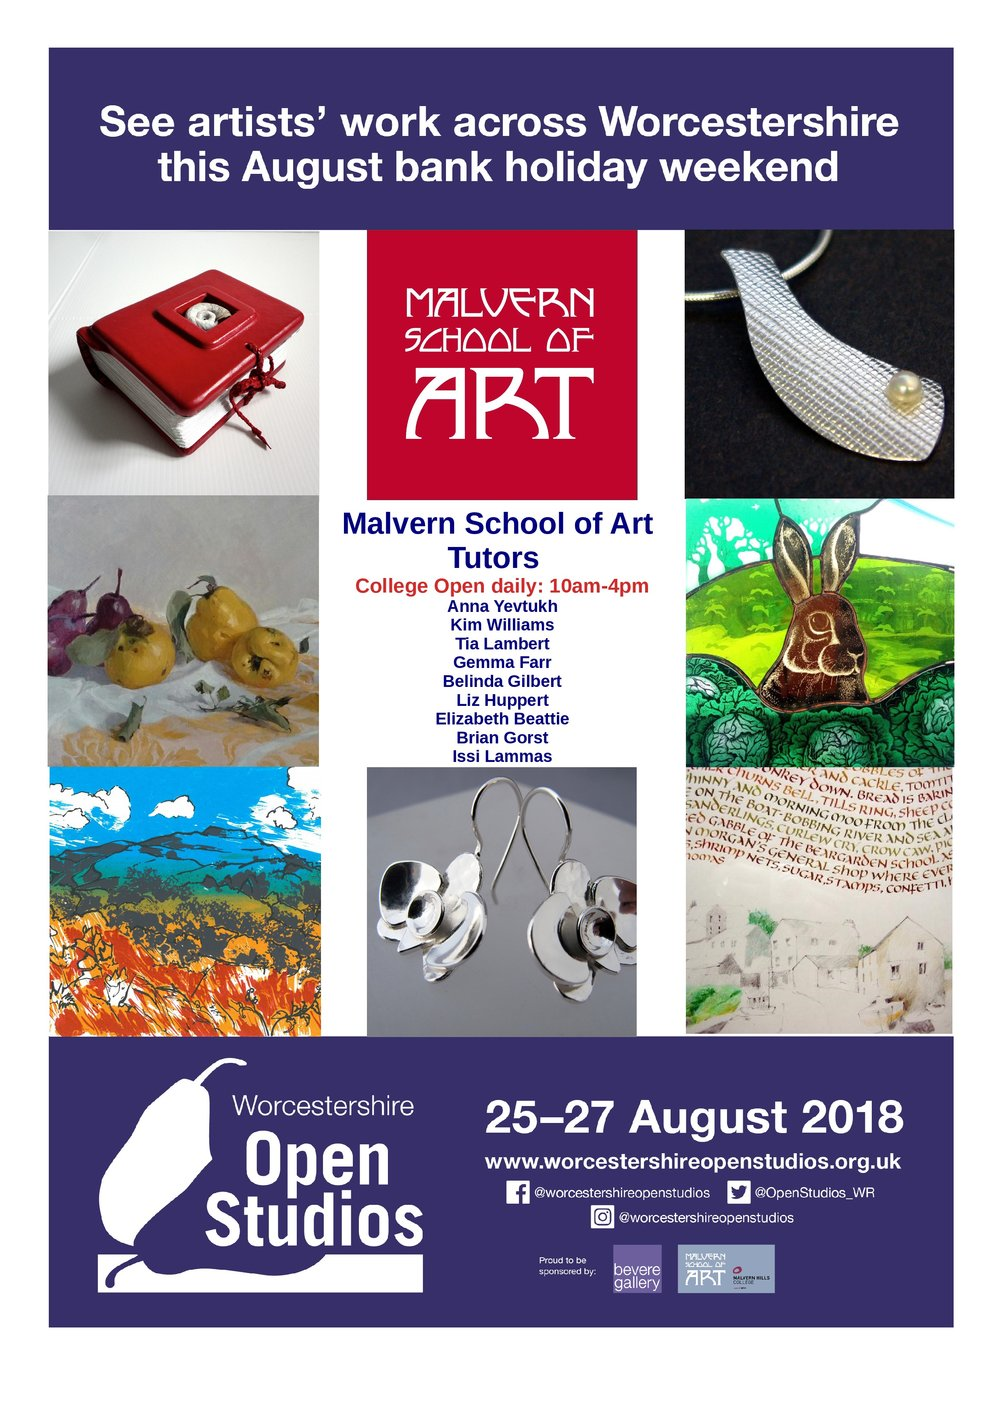 Do come and see us at Malvern Hills College, Albert Road North, Malvern, WR14 2YH over the Bank Holiday weekend. I hope to be demonstrating charcoal drawing.